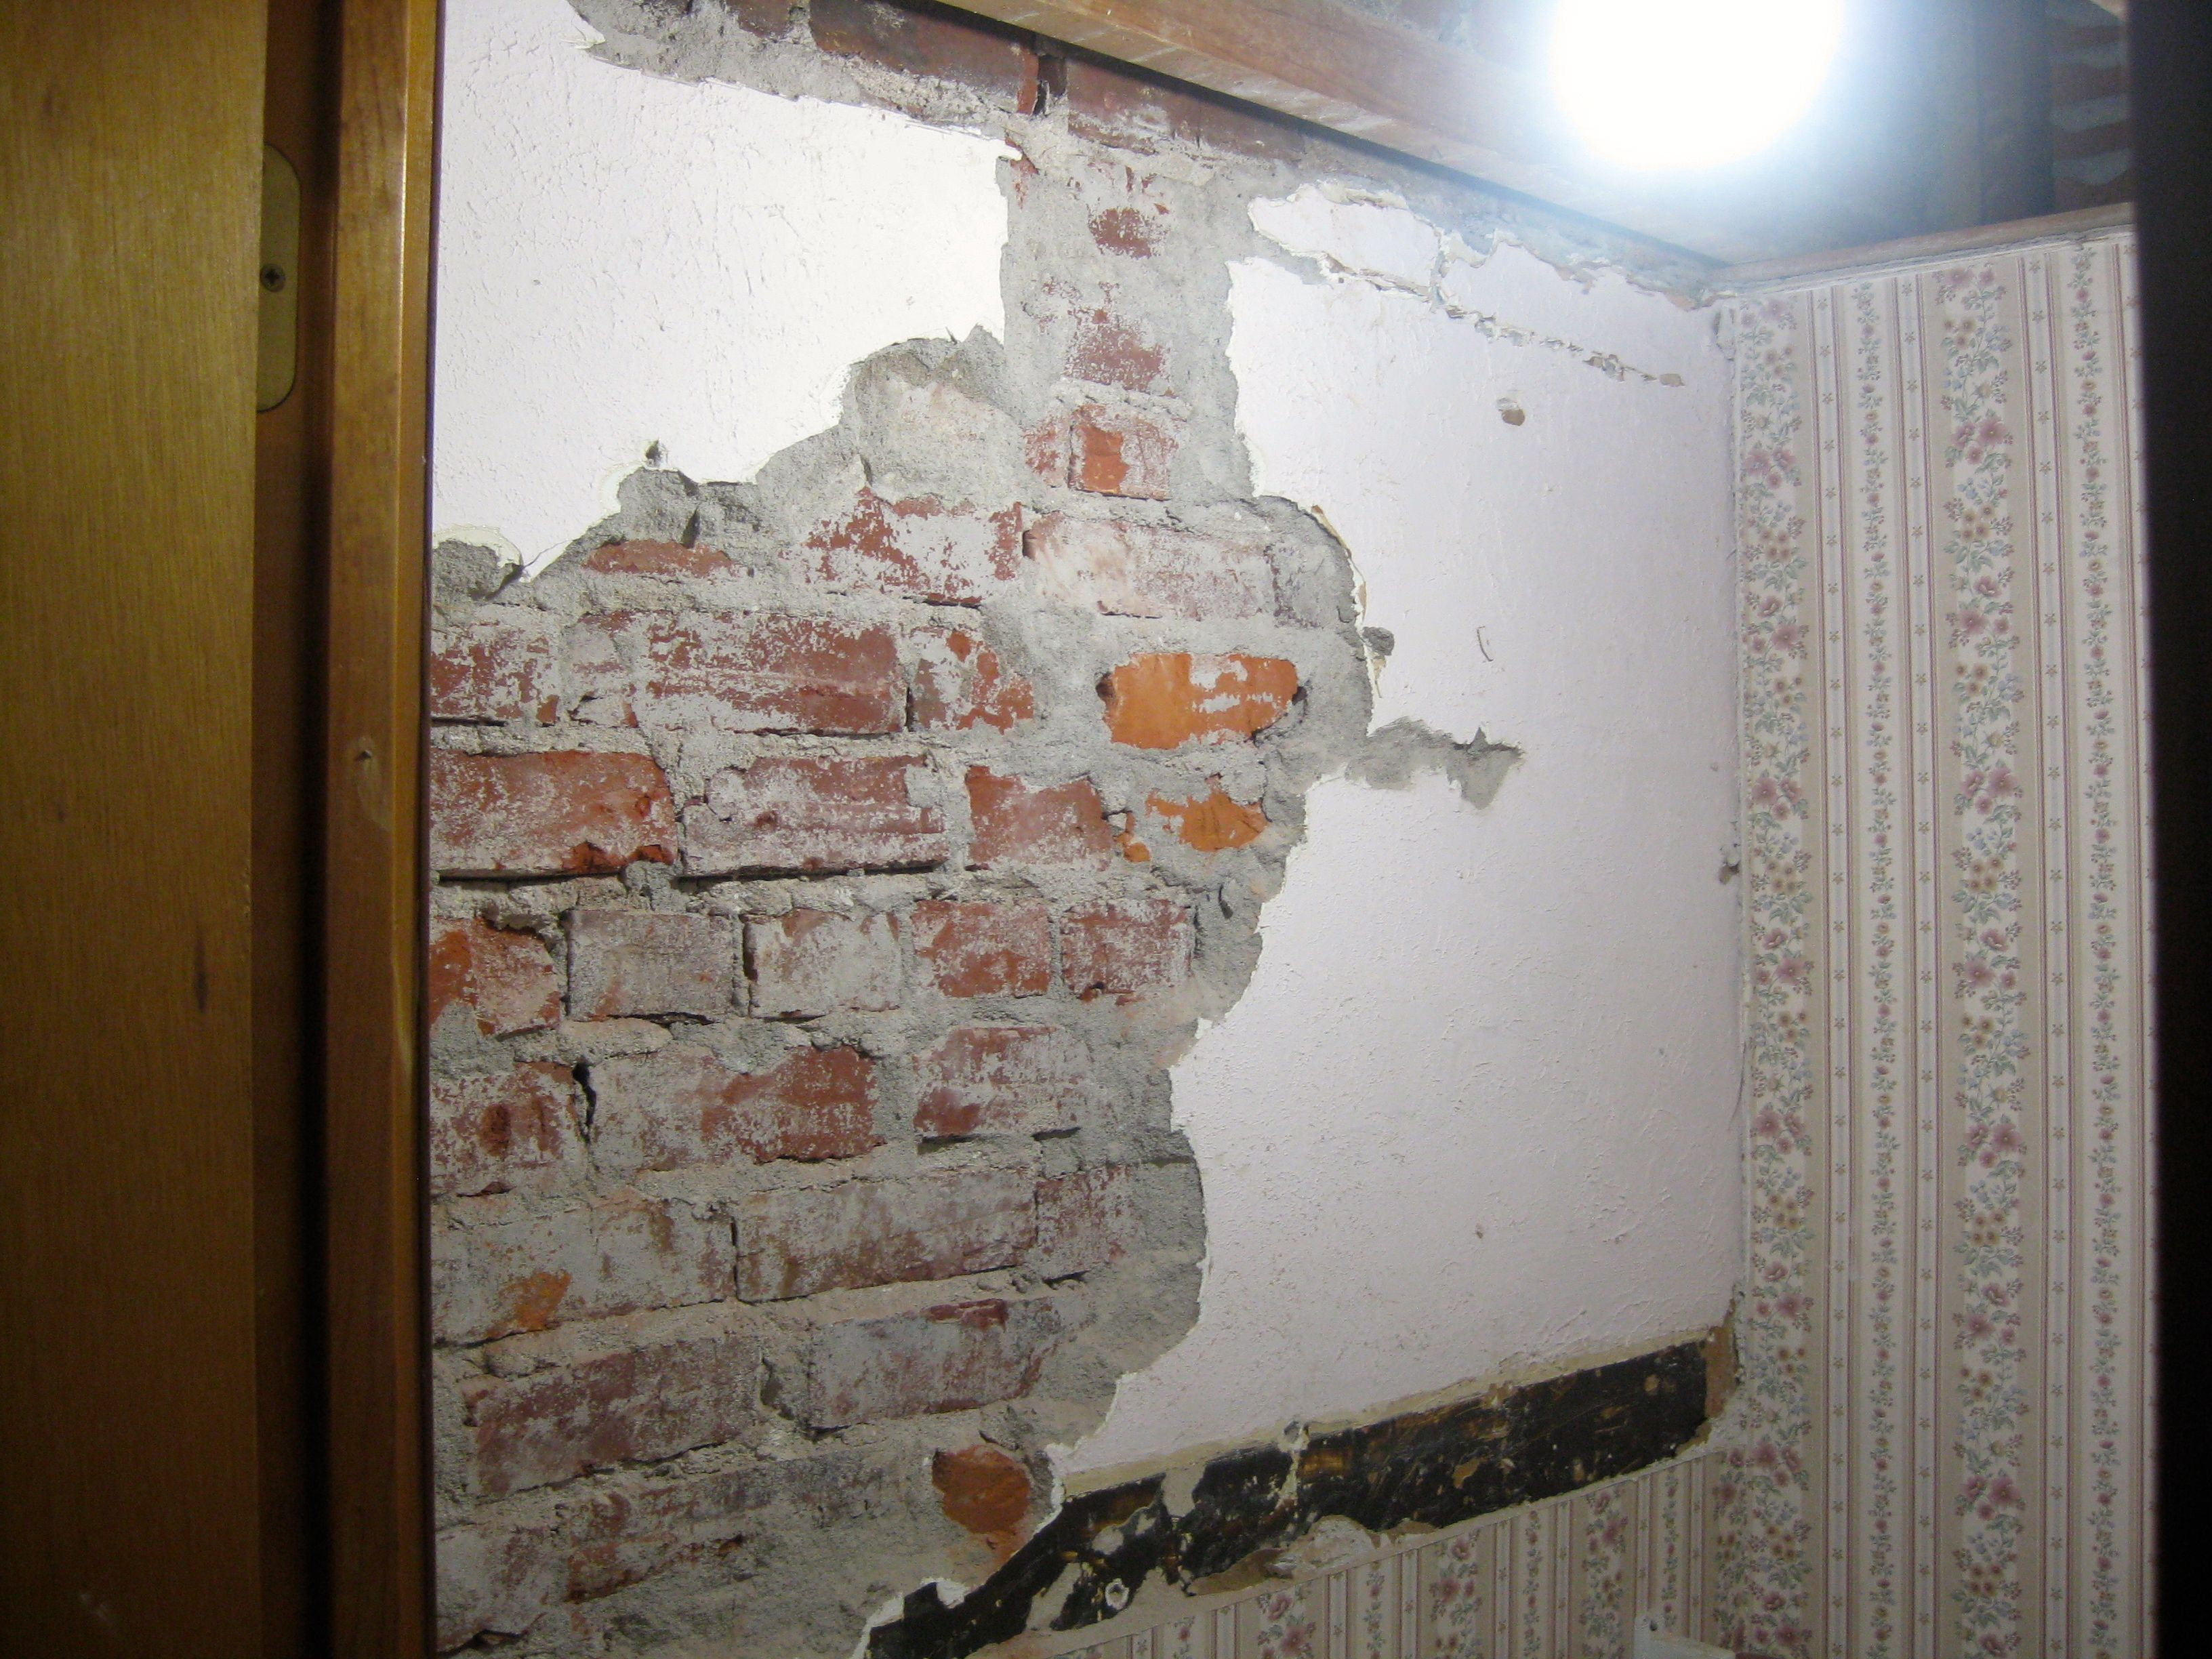 Chiseled off the plaster to expose the brick wall brick